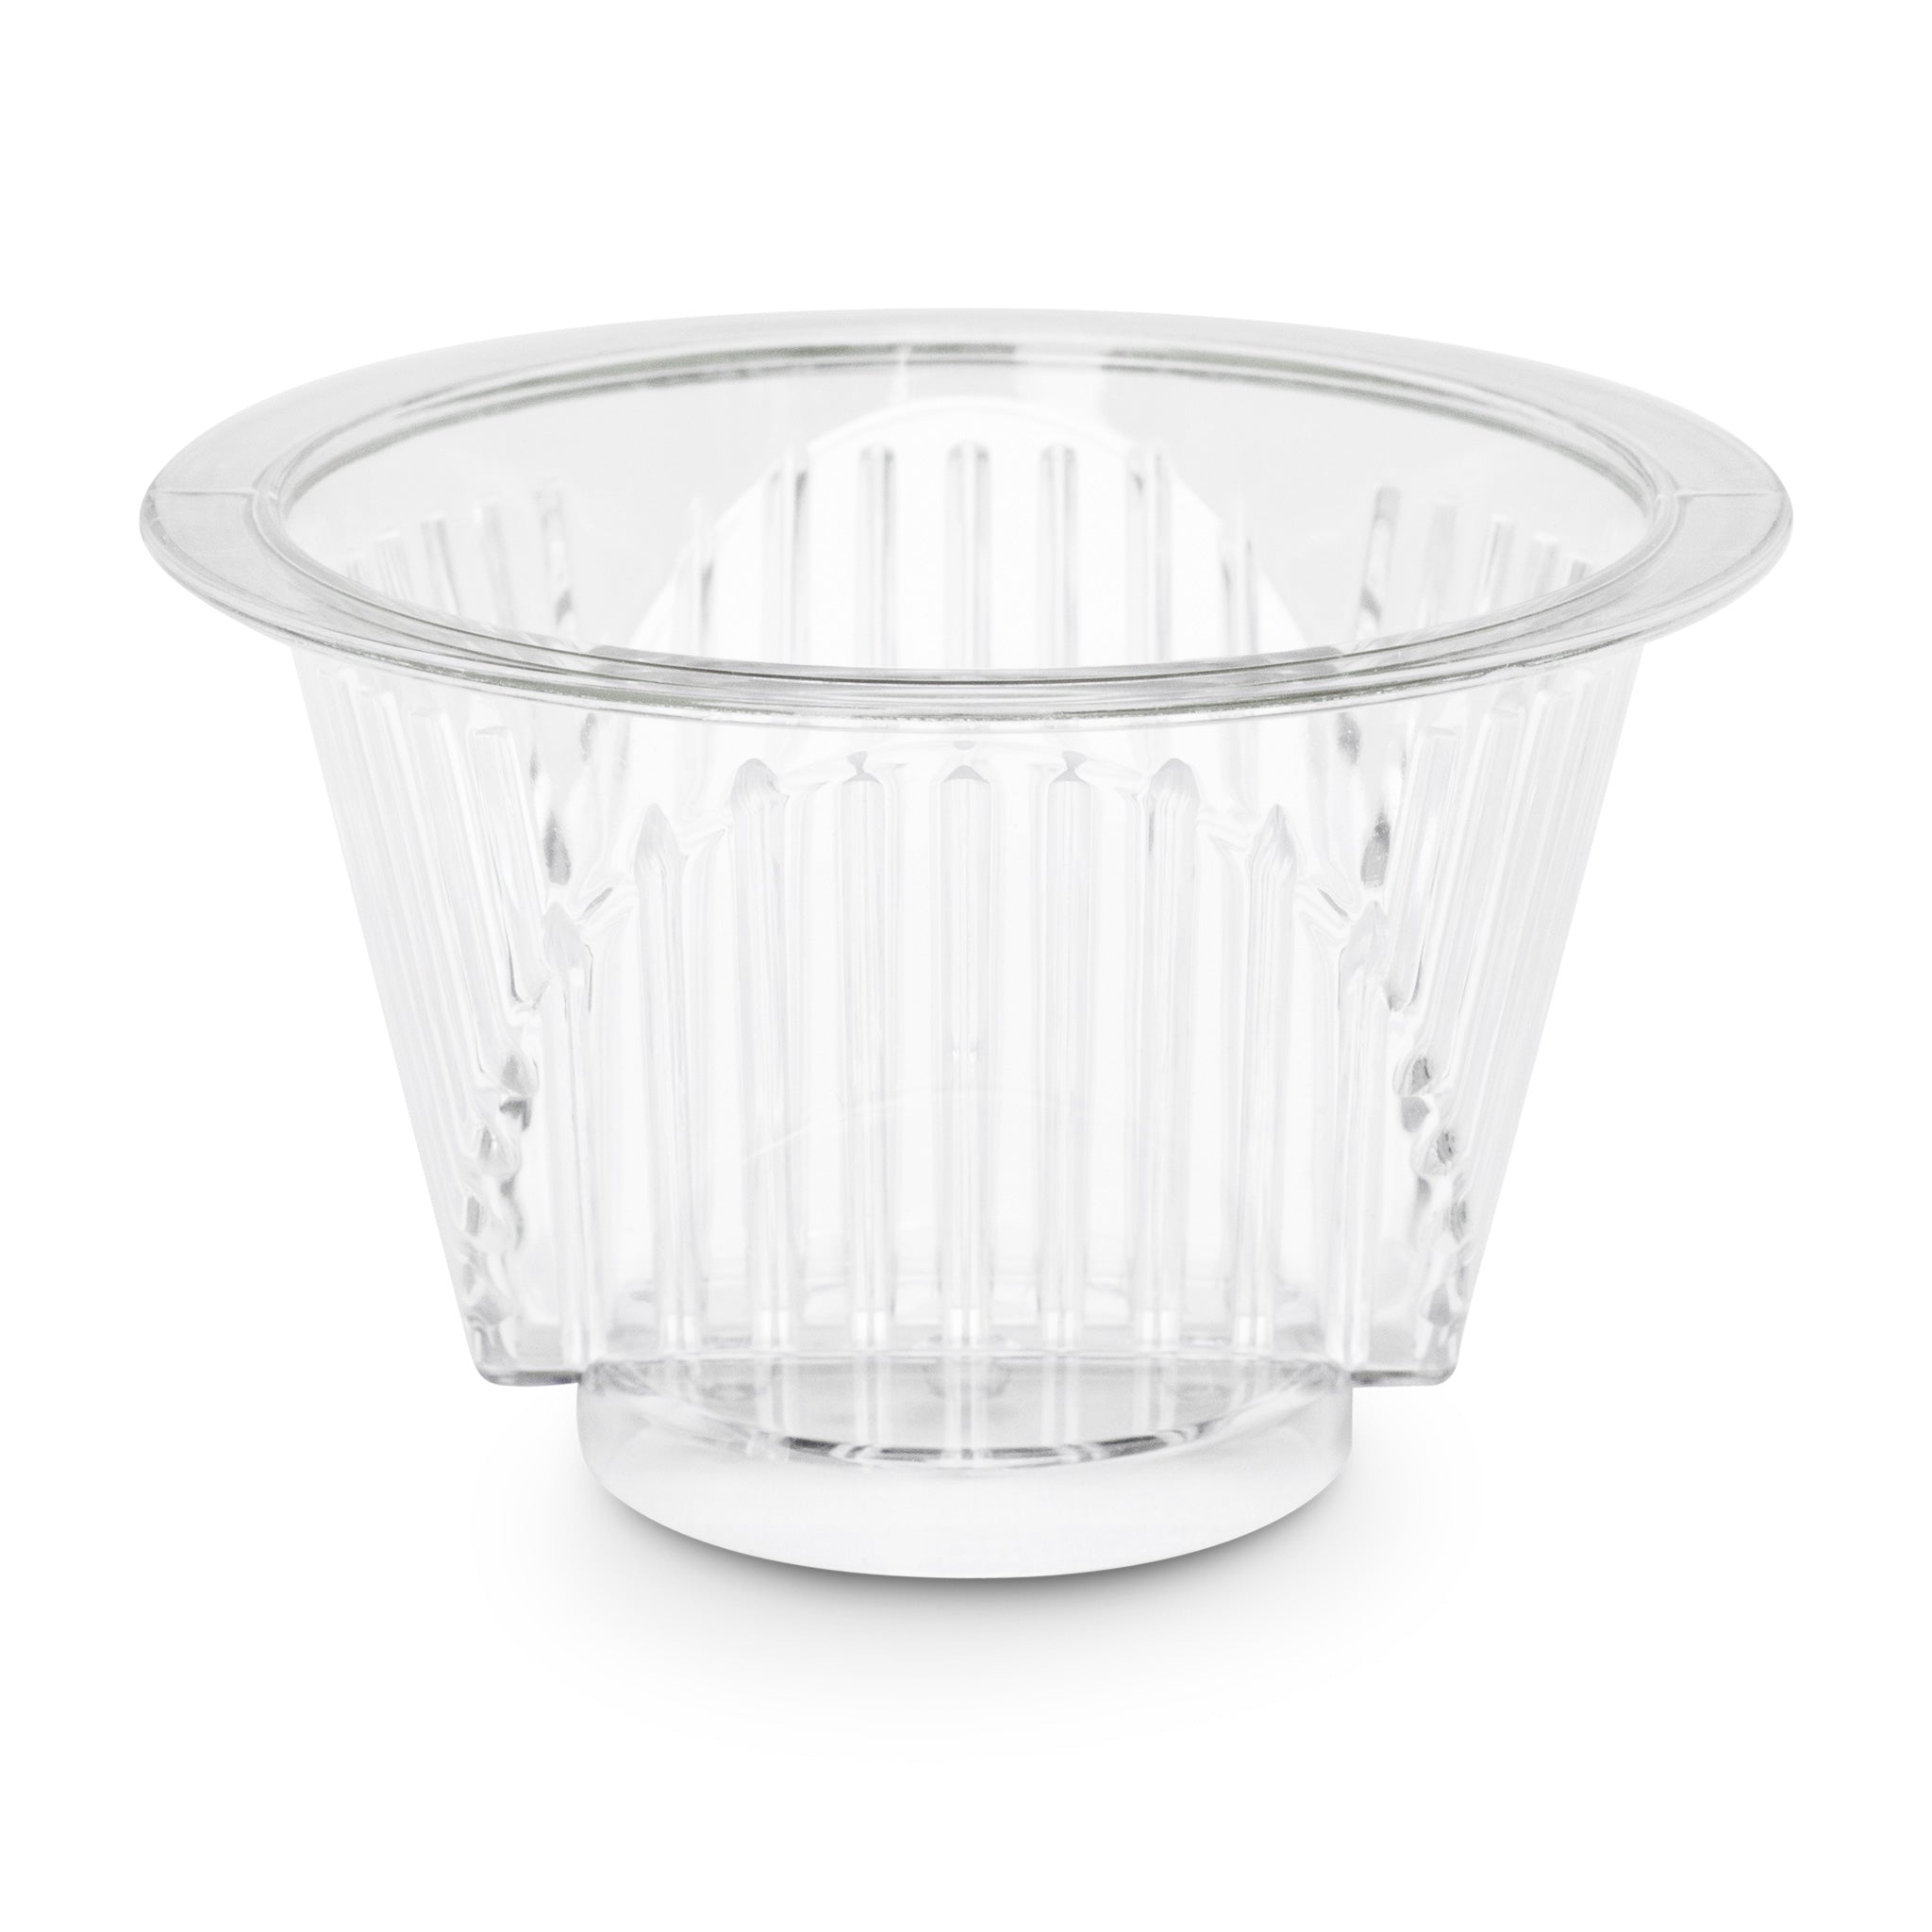 Filter Basket for Shine Kitchen Co.® Automatic Pour Over Coffee Machine (SCH-150) uses a #1 cone paper filter.